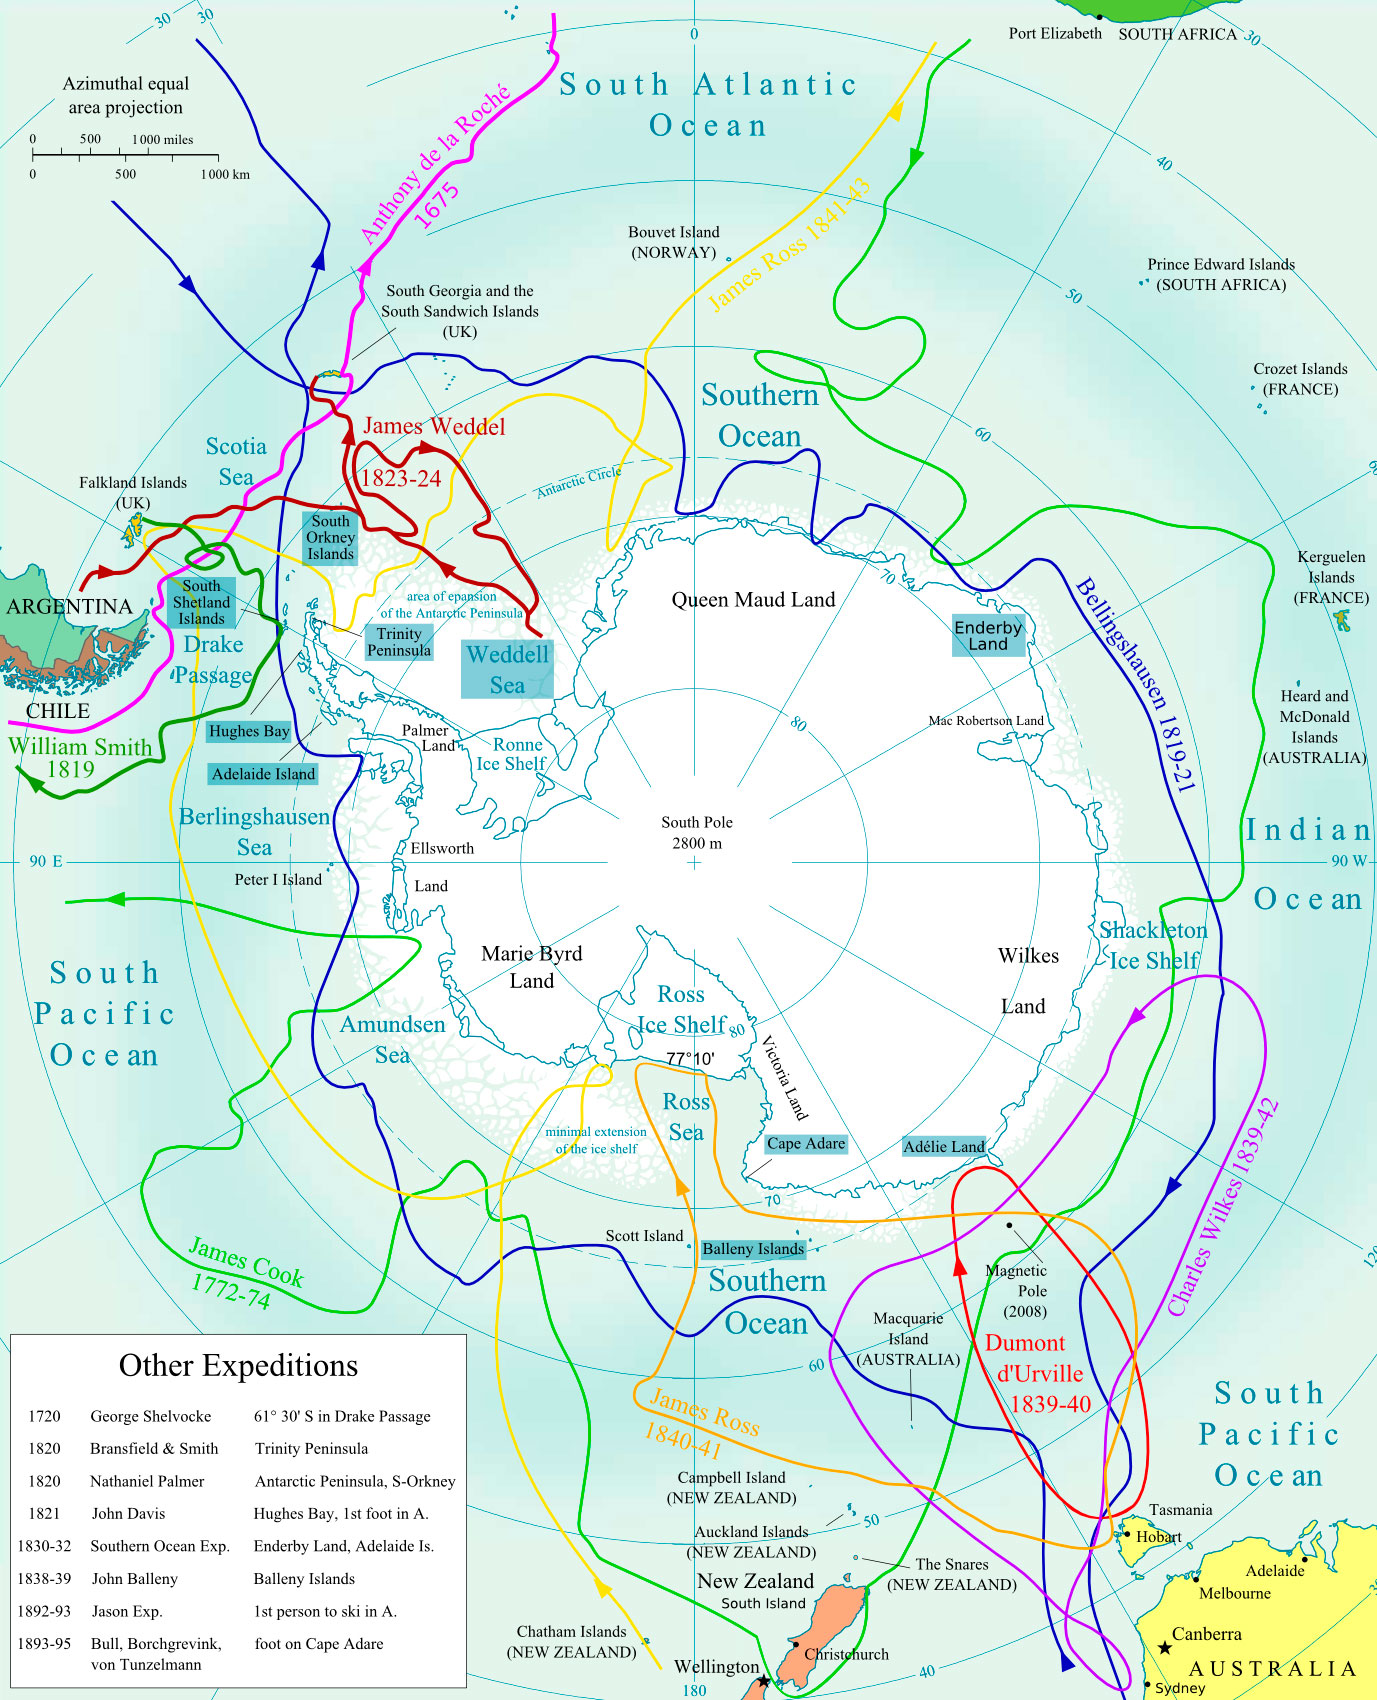 Wikipedia Org Expeditions In Antarctica Before The Heroic Age Of Antarctic Exploration 1897